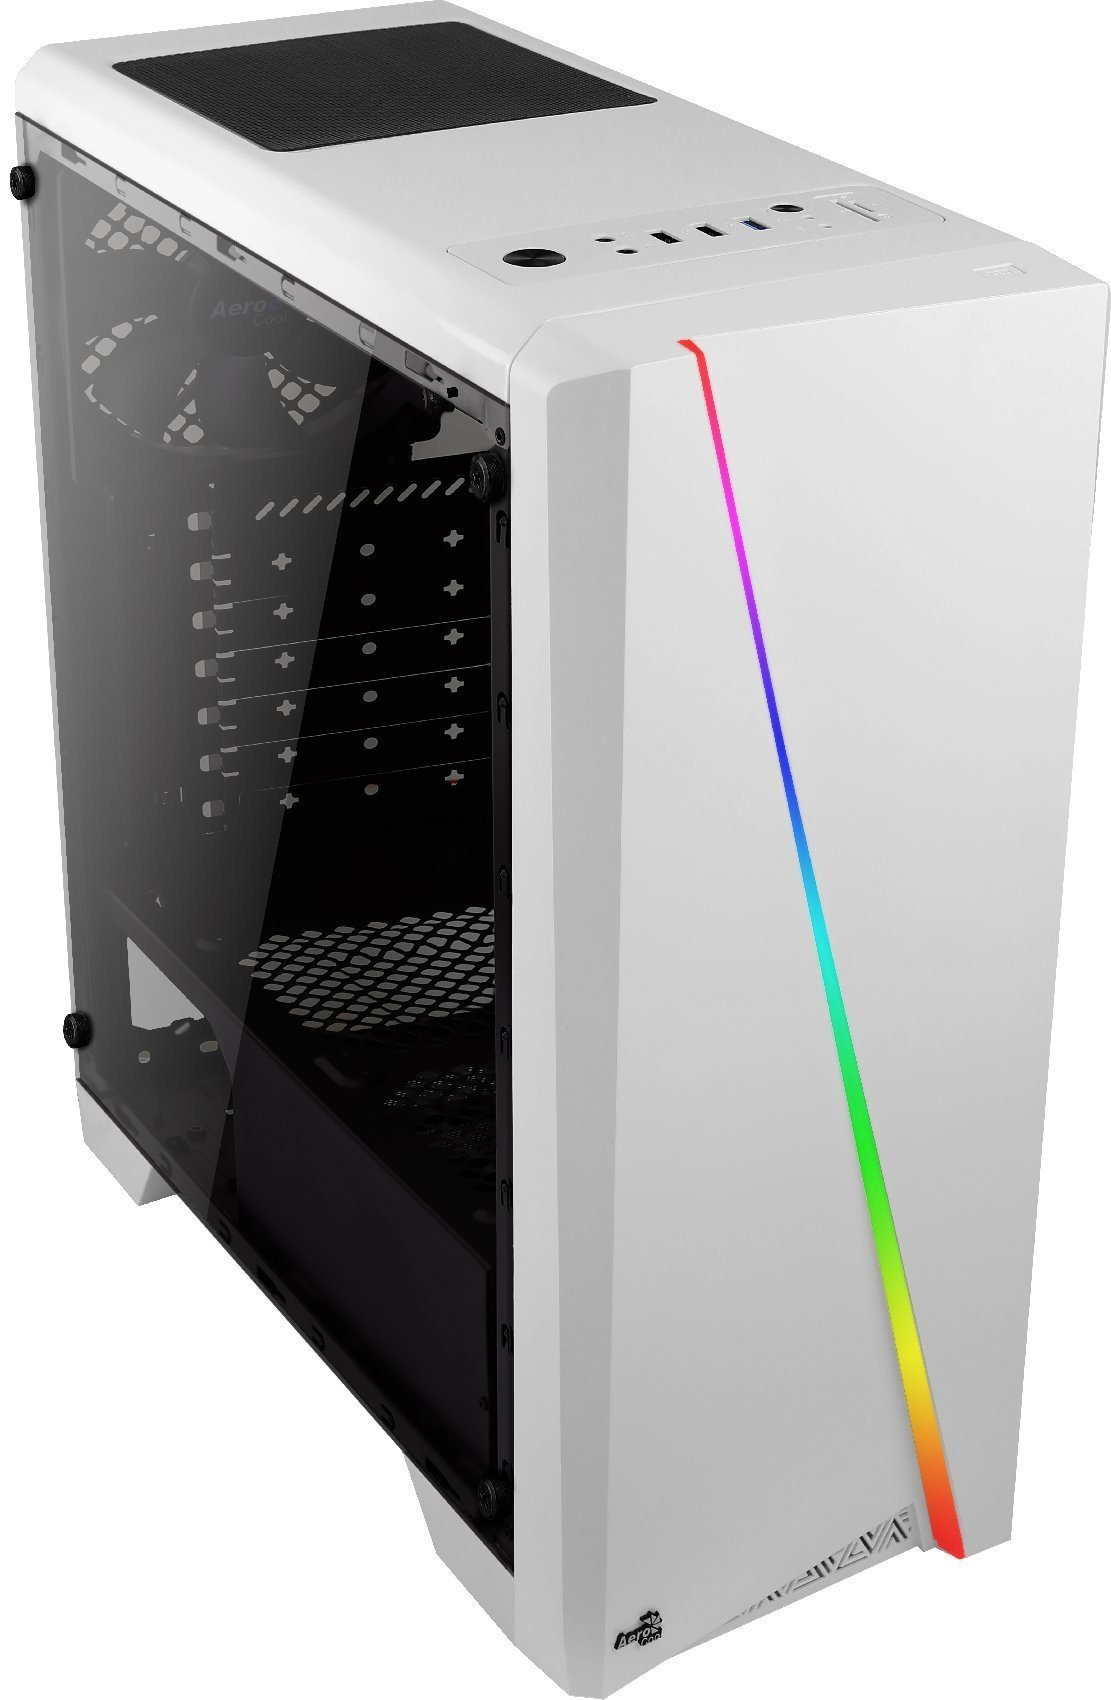 Case ATX - Cylon WG White - RGB, Tempered glass - ACCM-PV10013.21